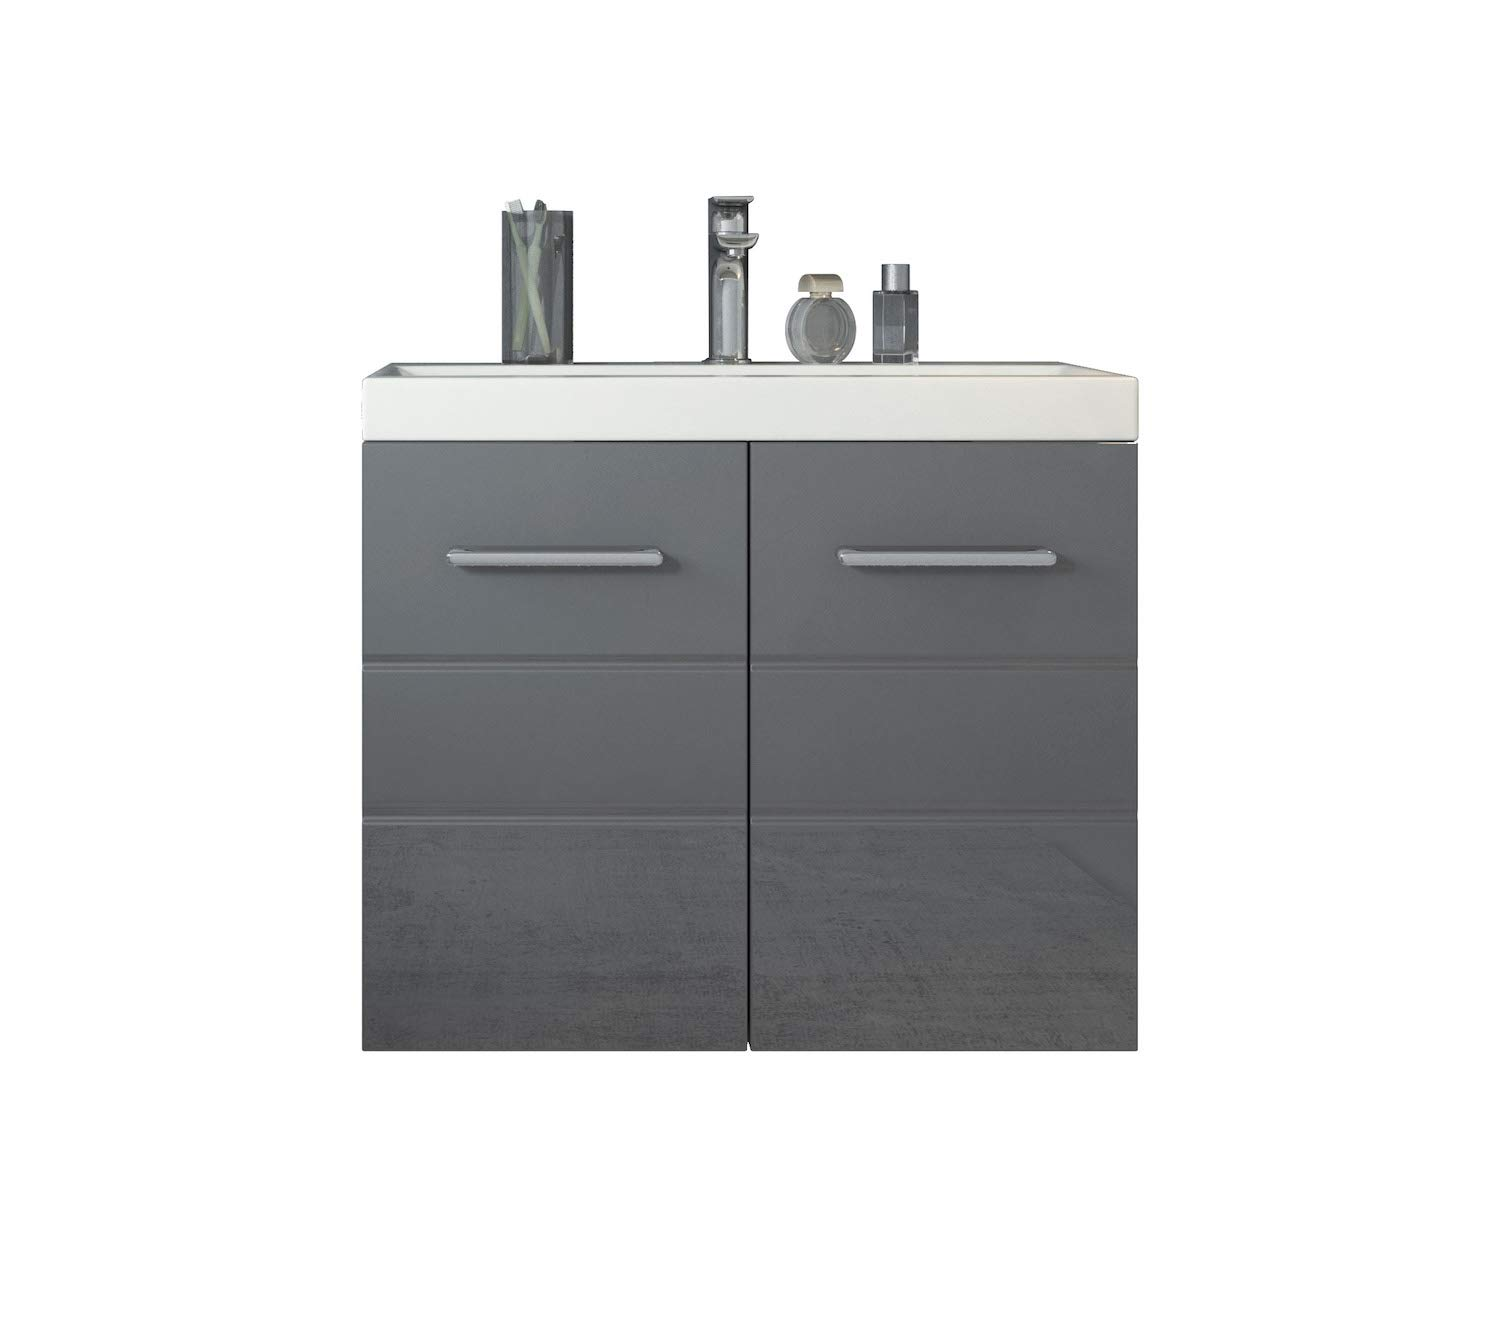 Badplaats Bathroom cabinet Toledo 01, Basin 60 x 35 cm - Storage cabinet vanity unit sink furniture